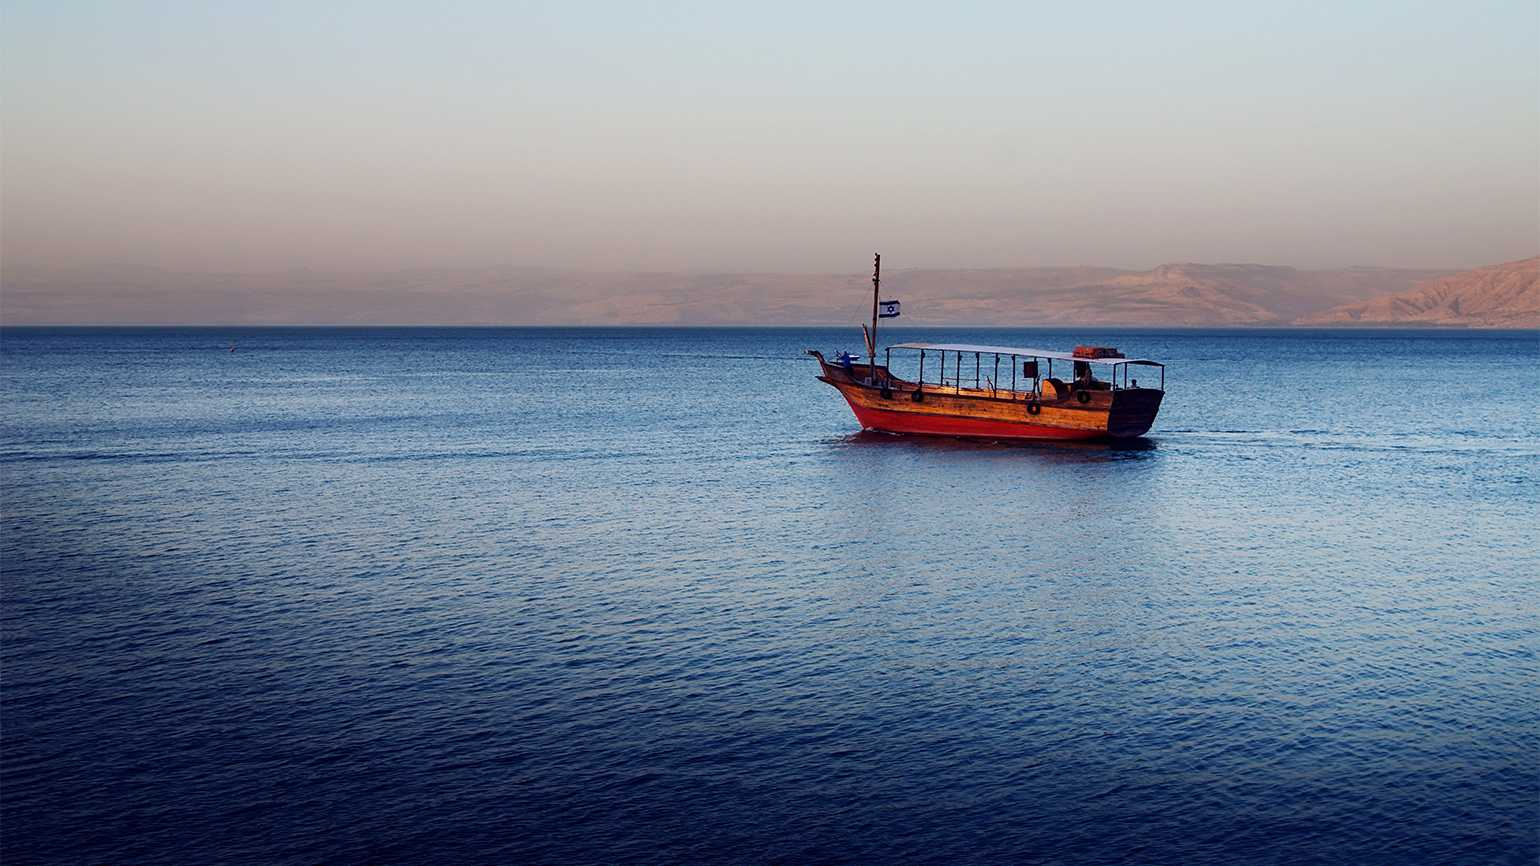 Fishing boat on sea of Galilee